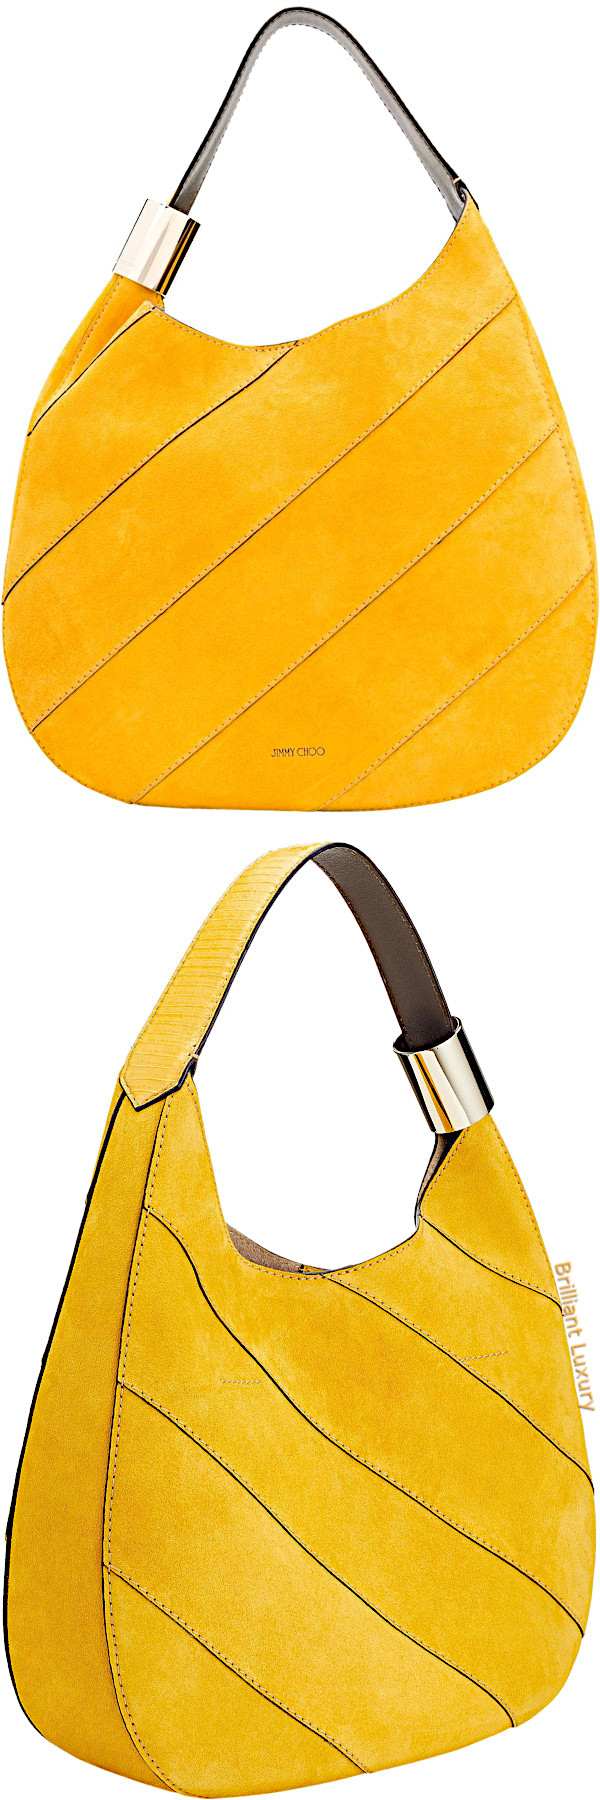 Jimmy Choo Stevie saffron suede shoulder bag with stitching and elaphe in yellow